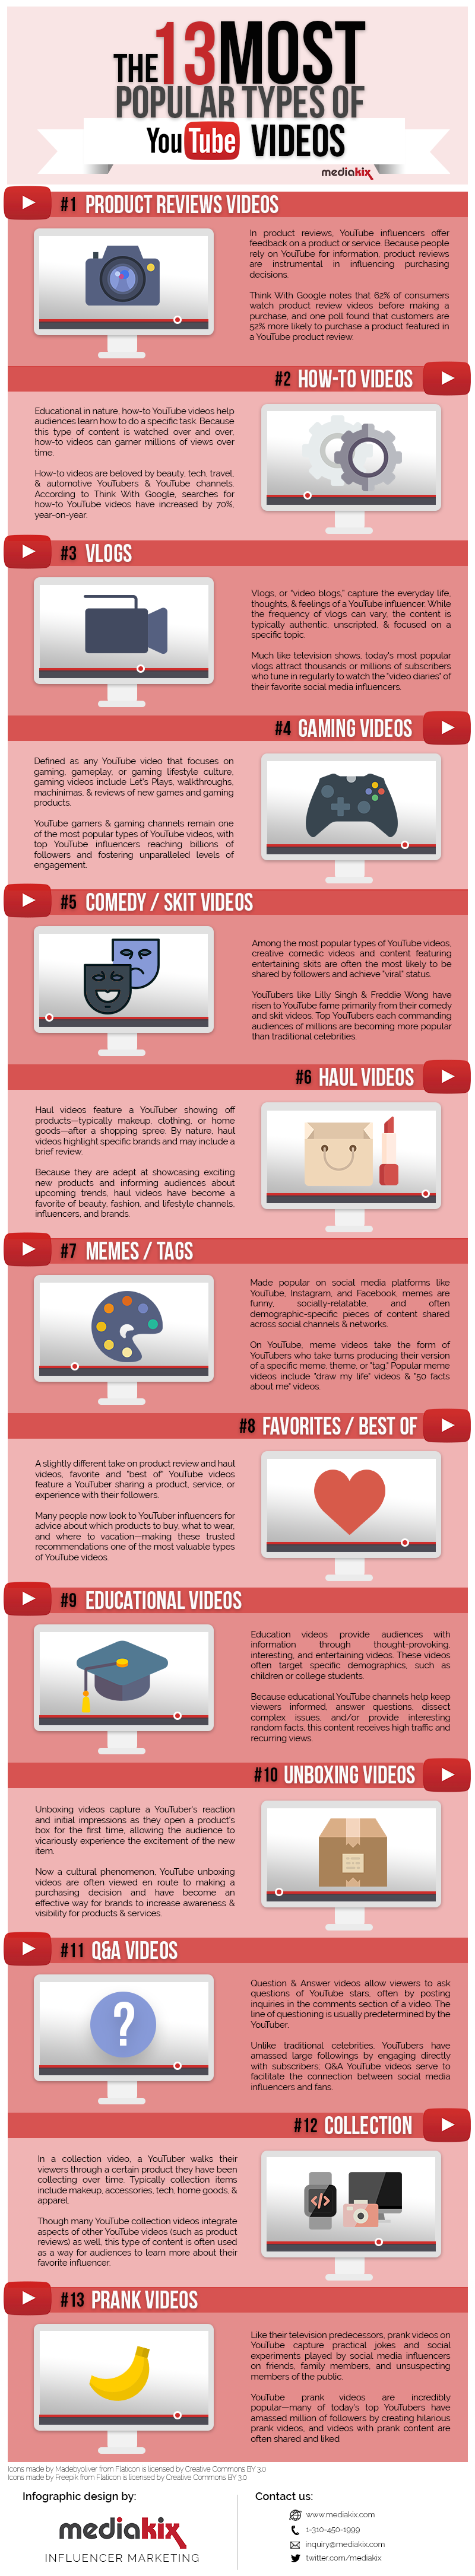 13 Types of Youtube Videos Ranked (infographic) 1